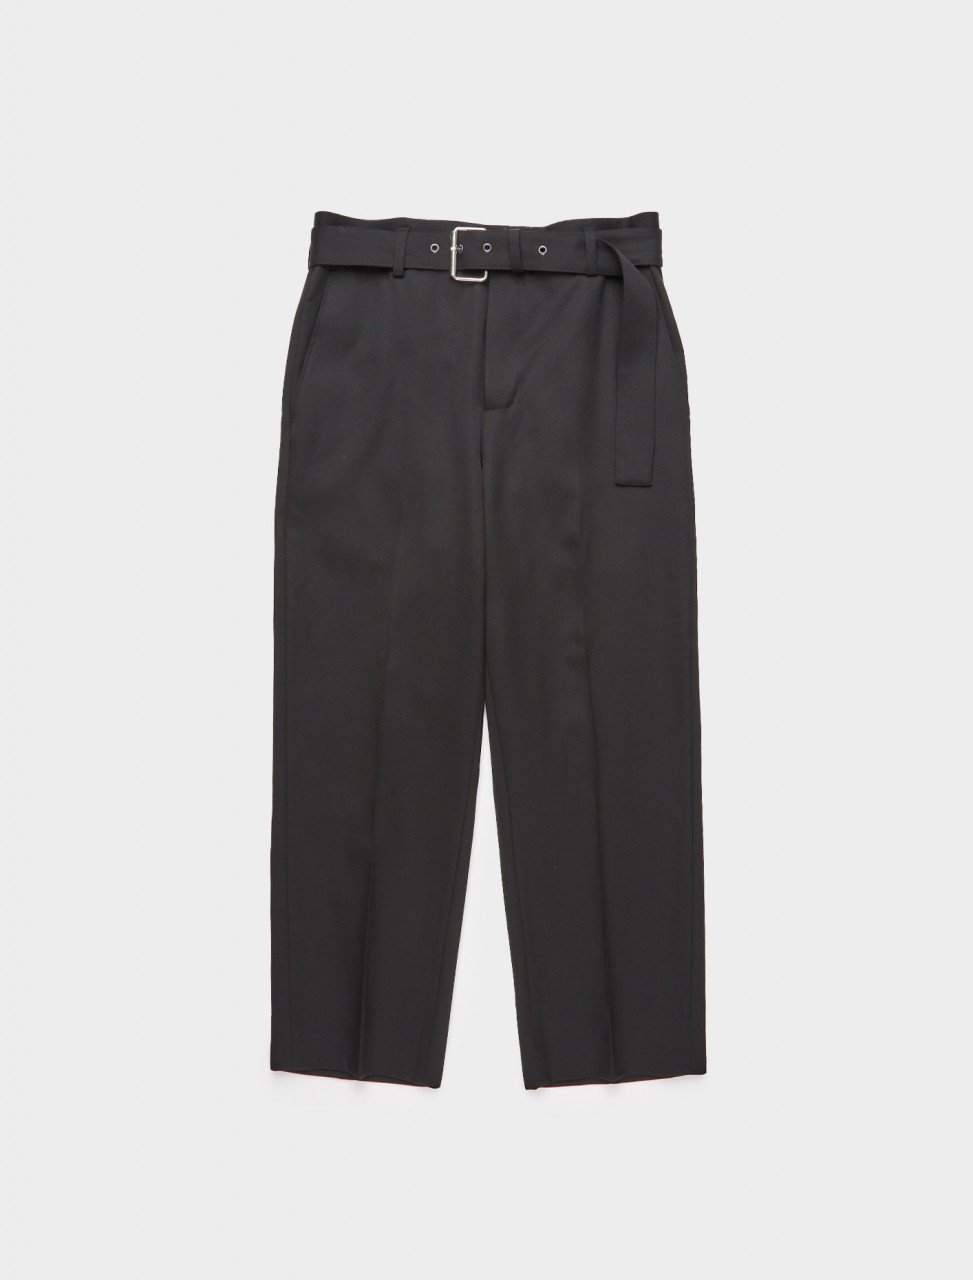 179-TR0089-PG0011-999 JW ANDERSON BELTED STRAIGHT TROUSERS